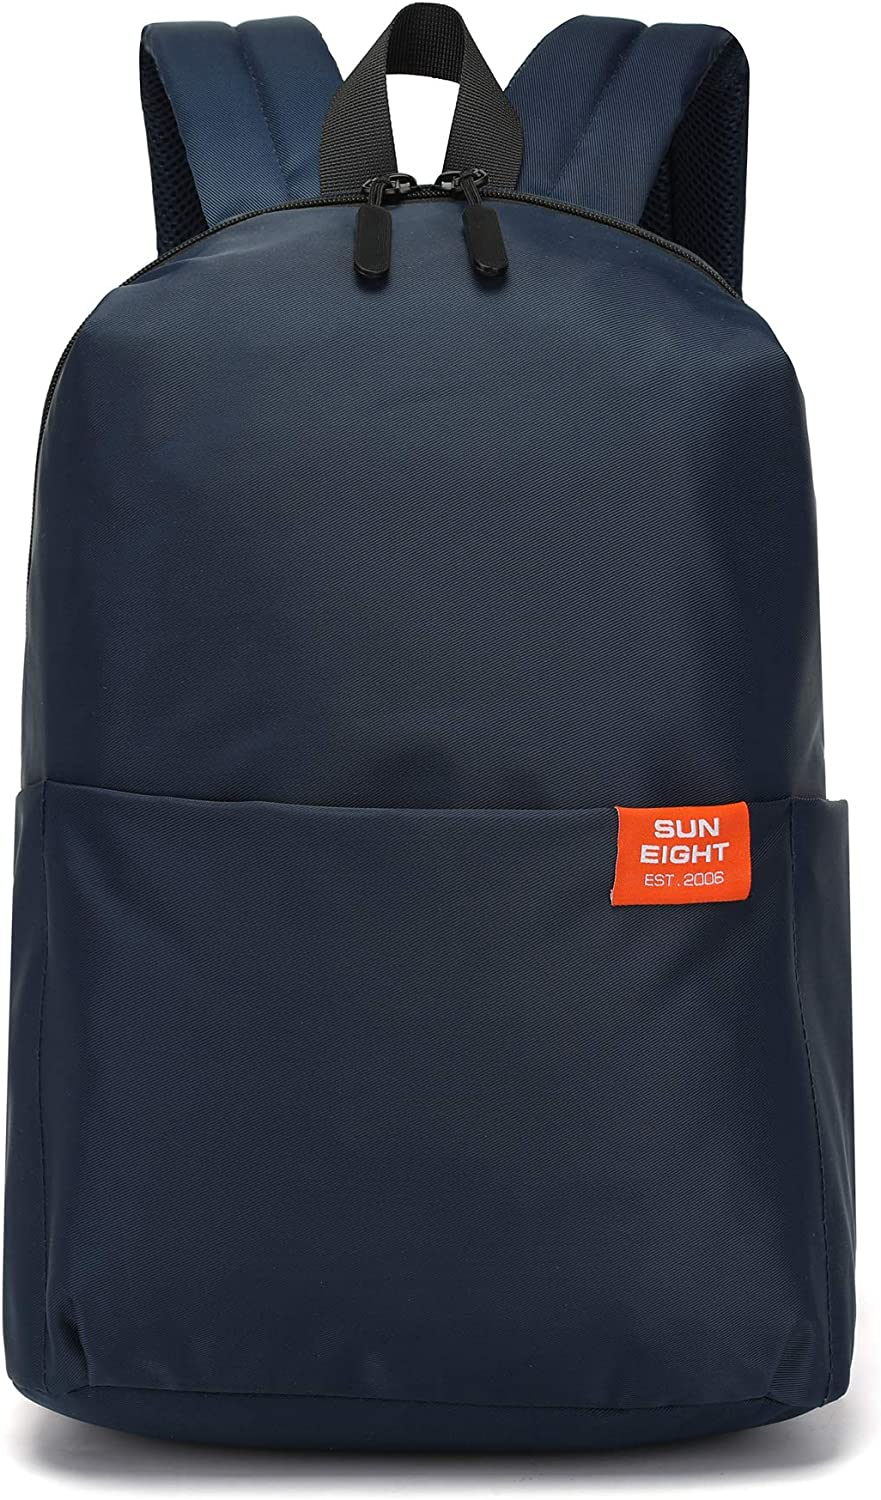 for School Laptop Bag Boys and Girls and Travel Summer Camp Casual Daypacks Blue1 SUN EIGHT Lightweight Backpack 15-17 Inc